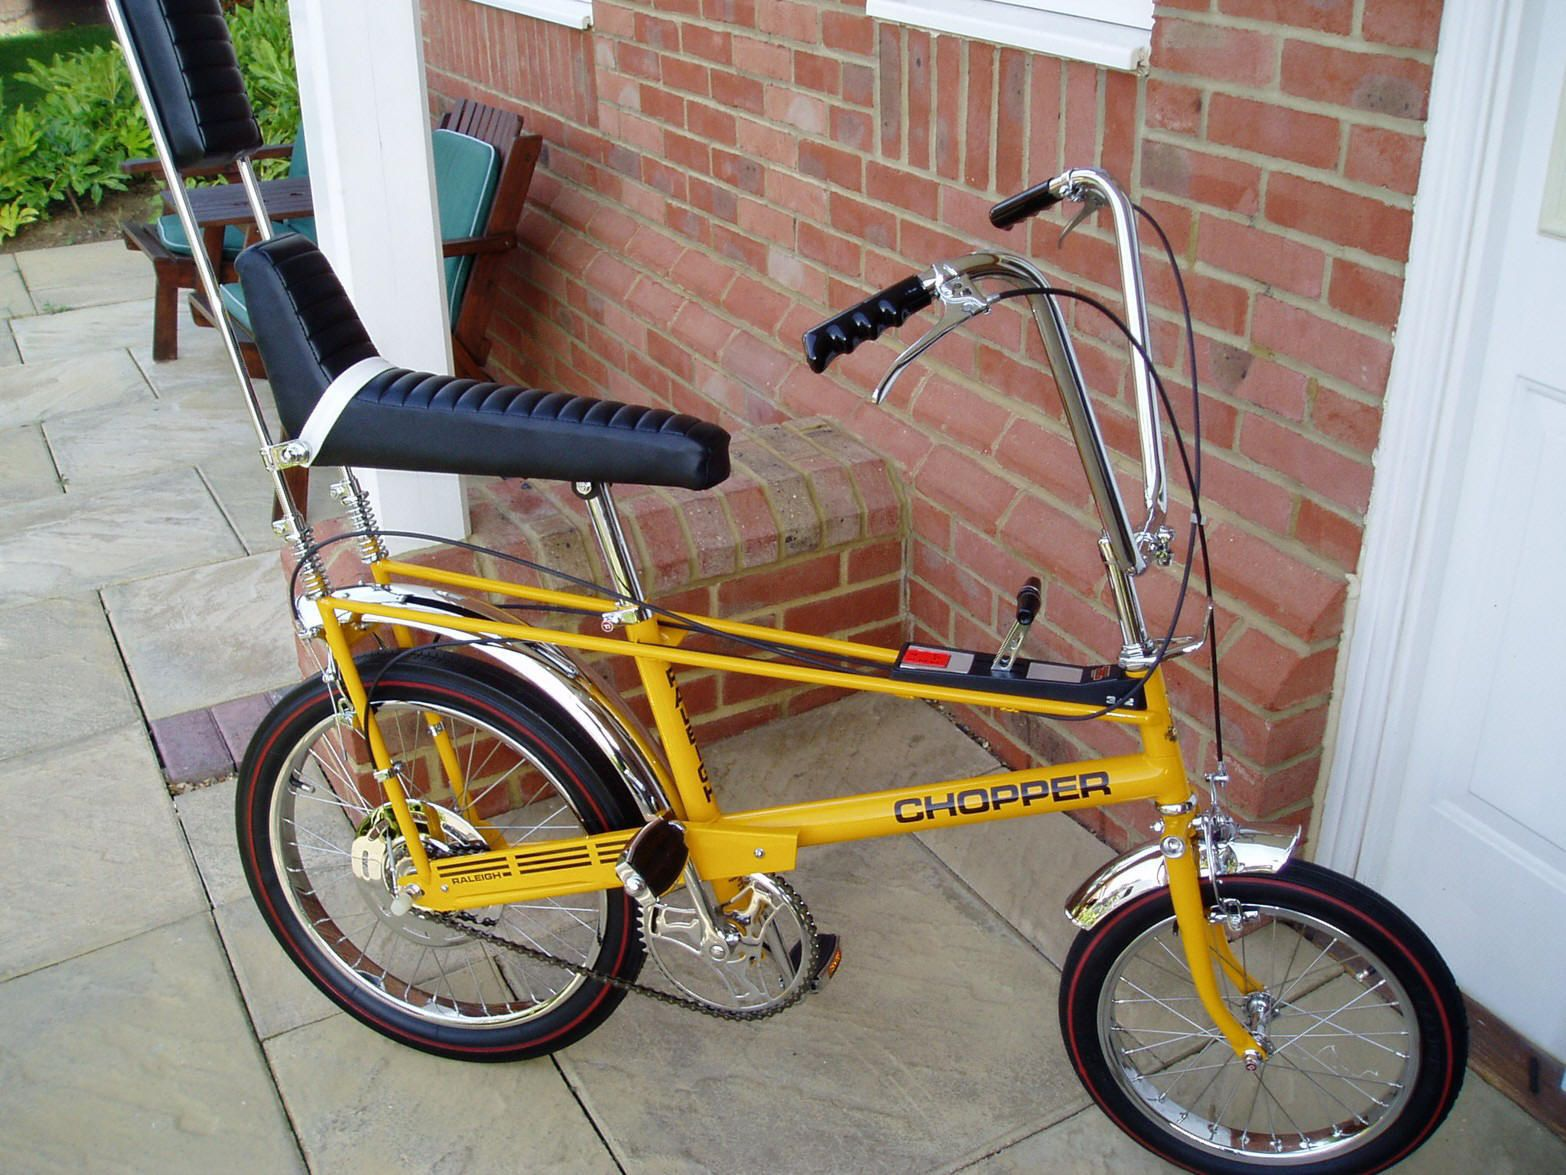 Oh My The Happy Memories On My Bike Lol Had One Just Like